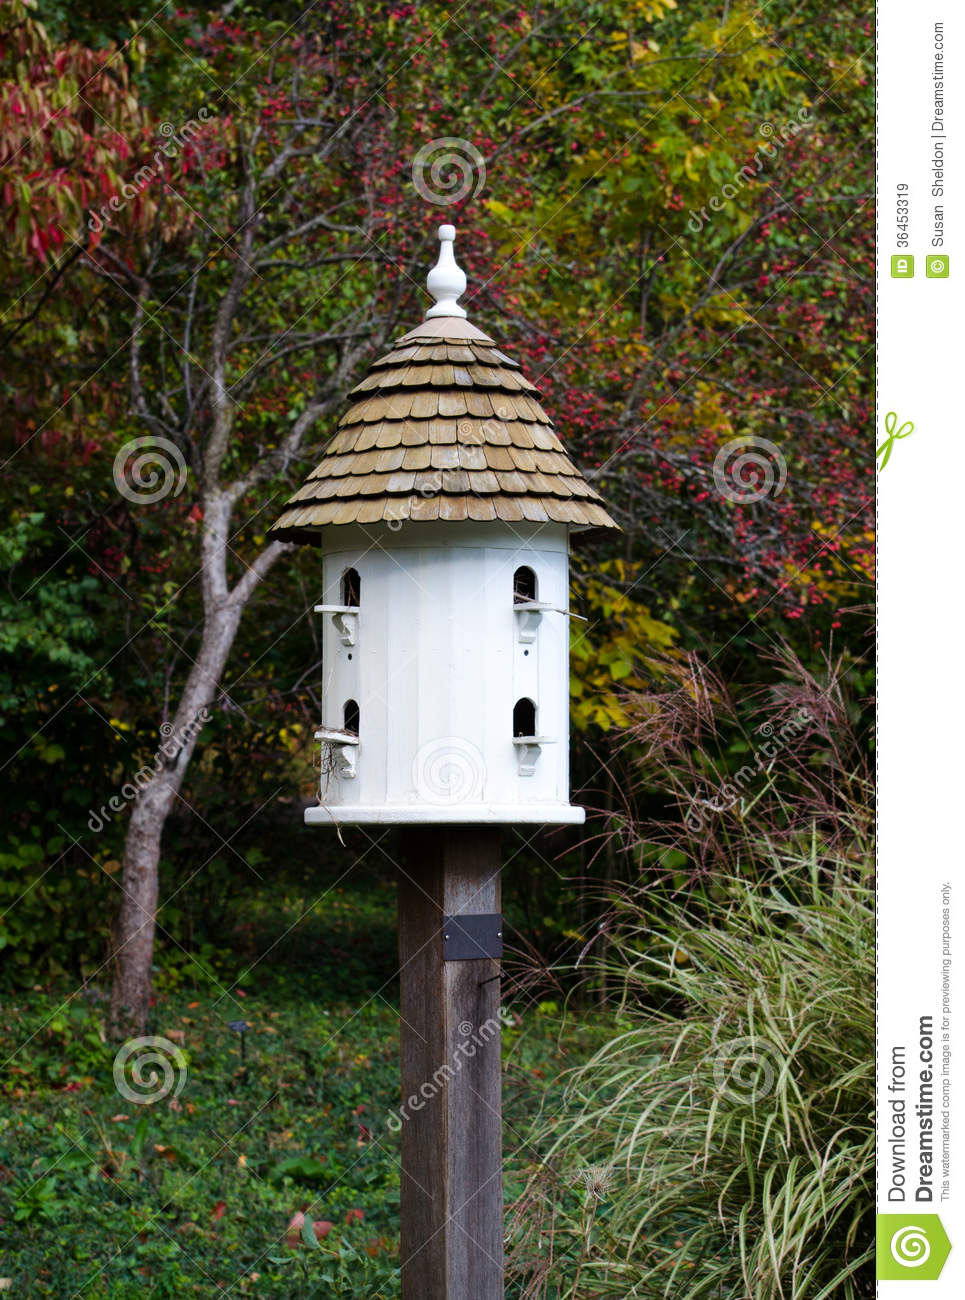 Fancy White Bird House Royalty Free Stock Images - Image ...